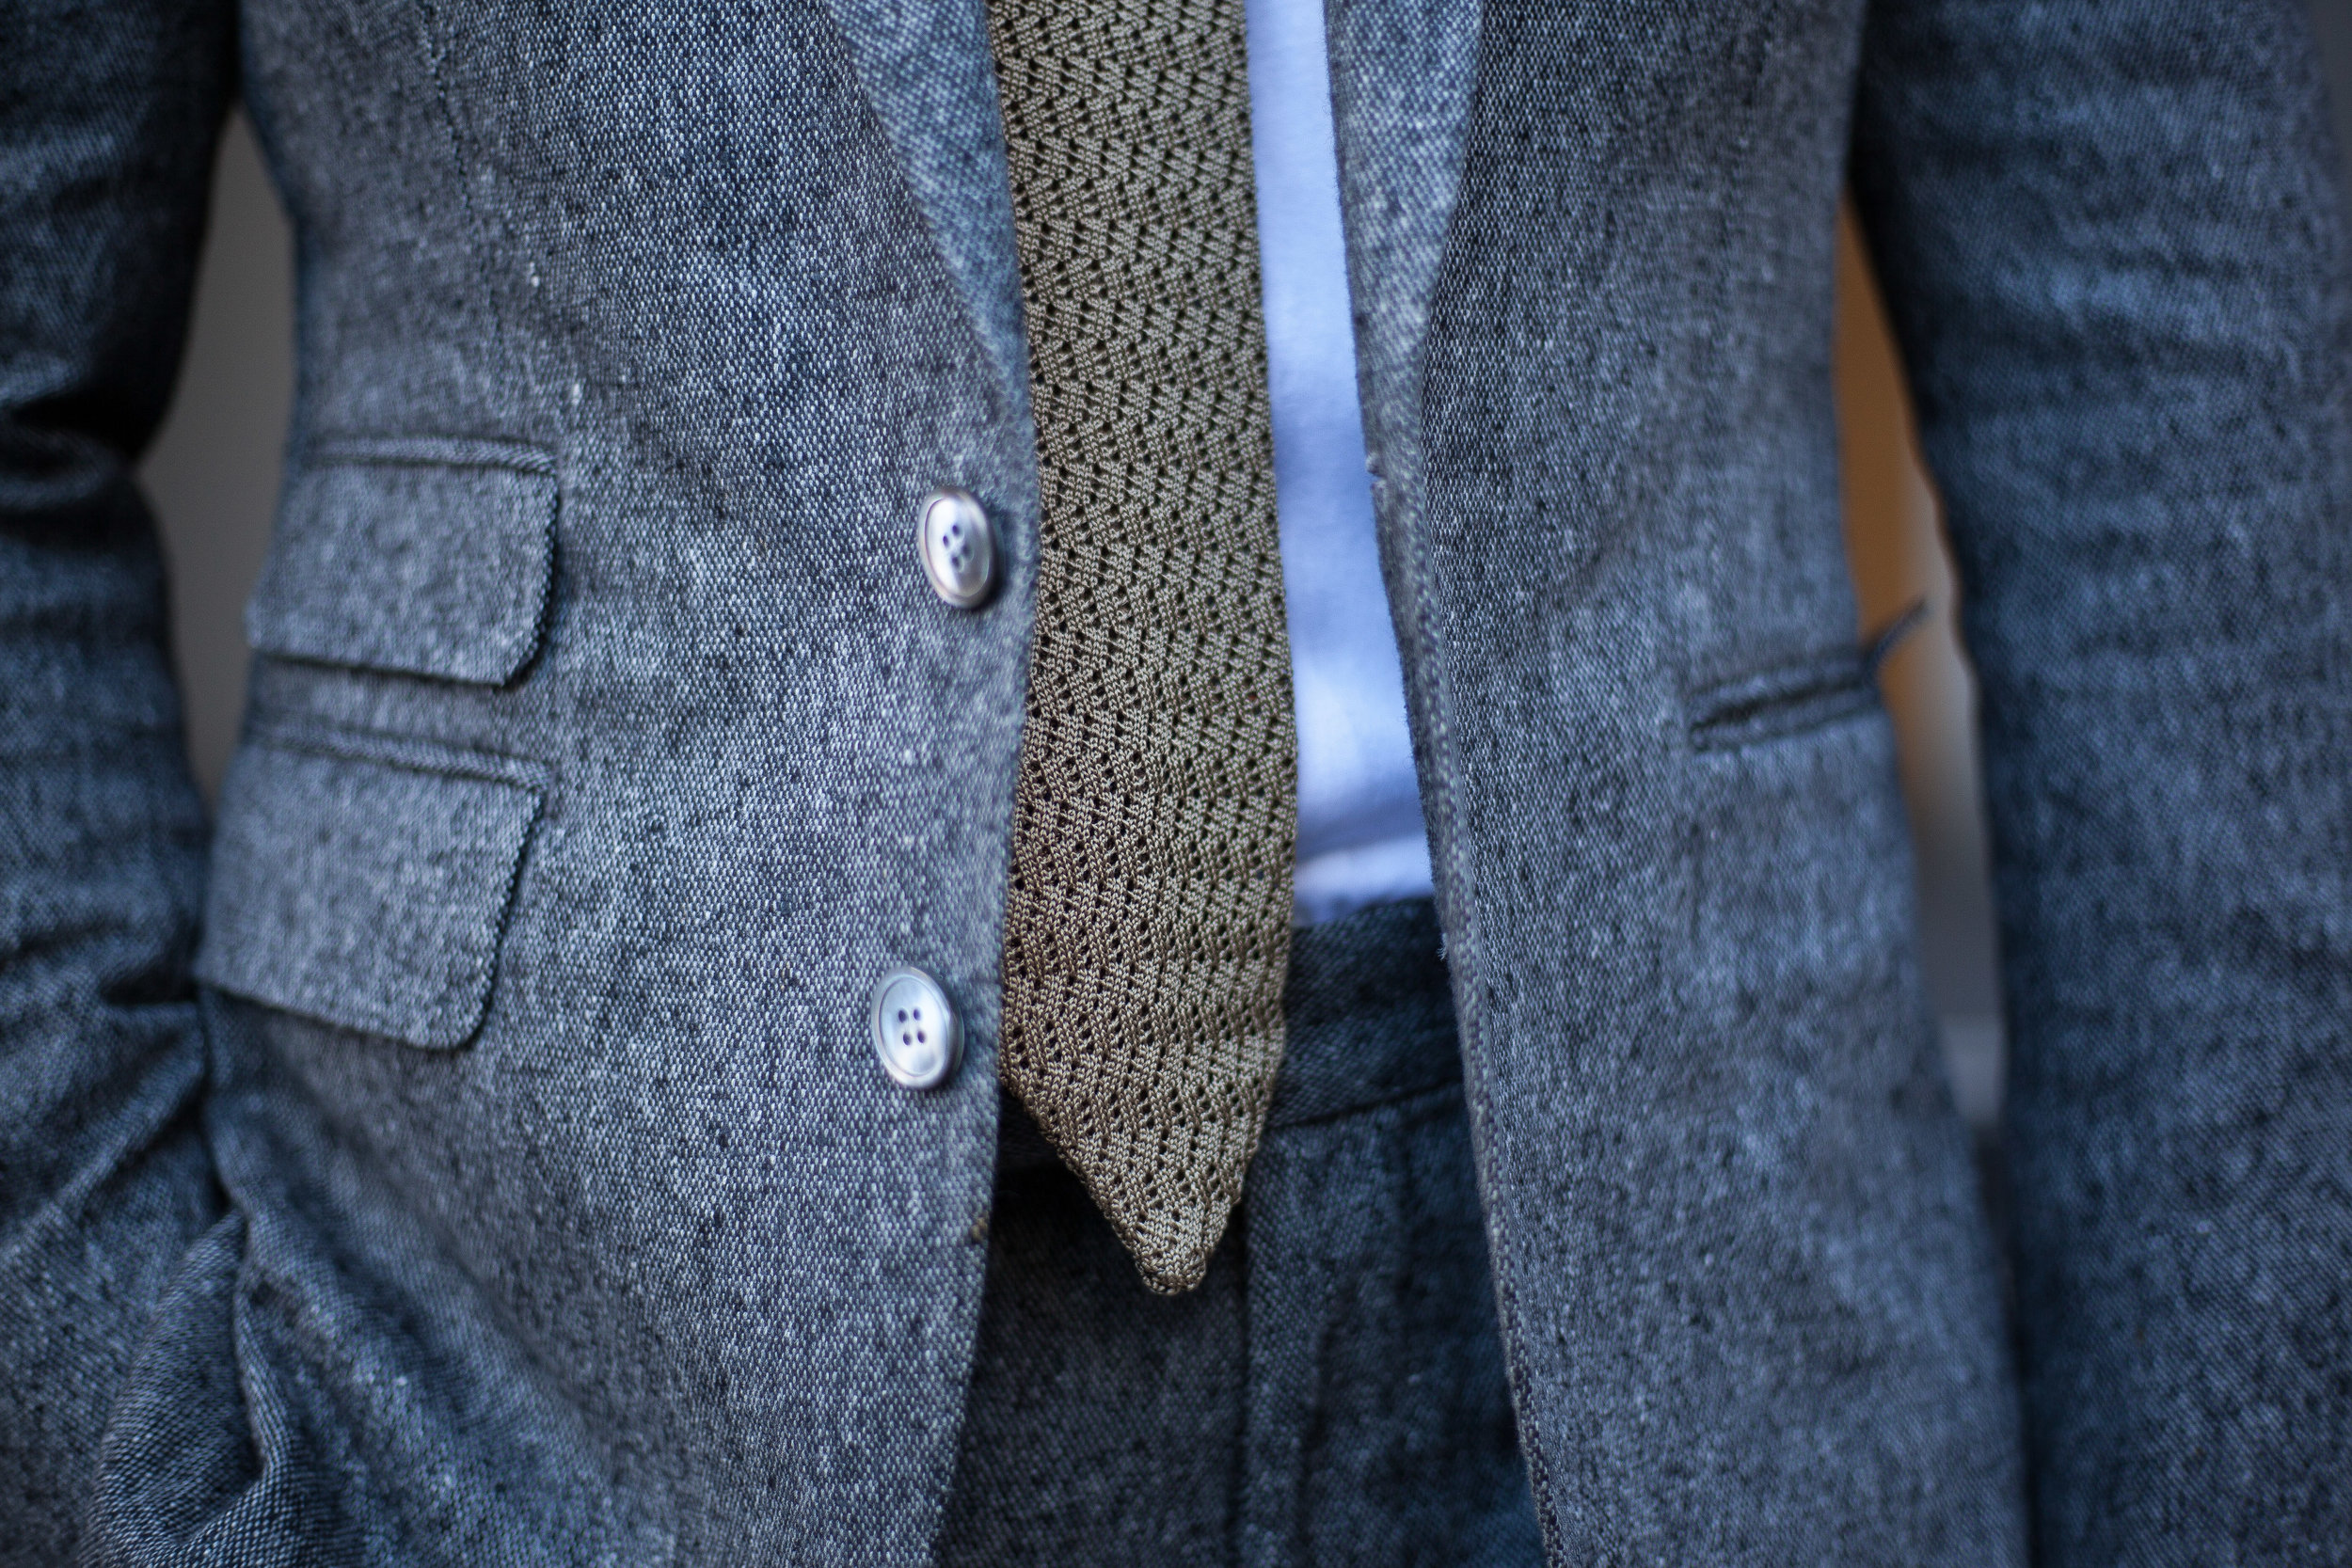 Garrison Essentials Classic Como Knit tie in Sand - $95